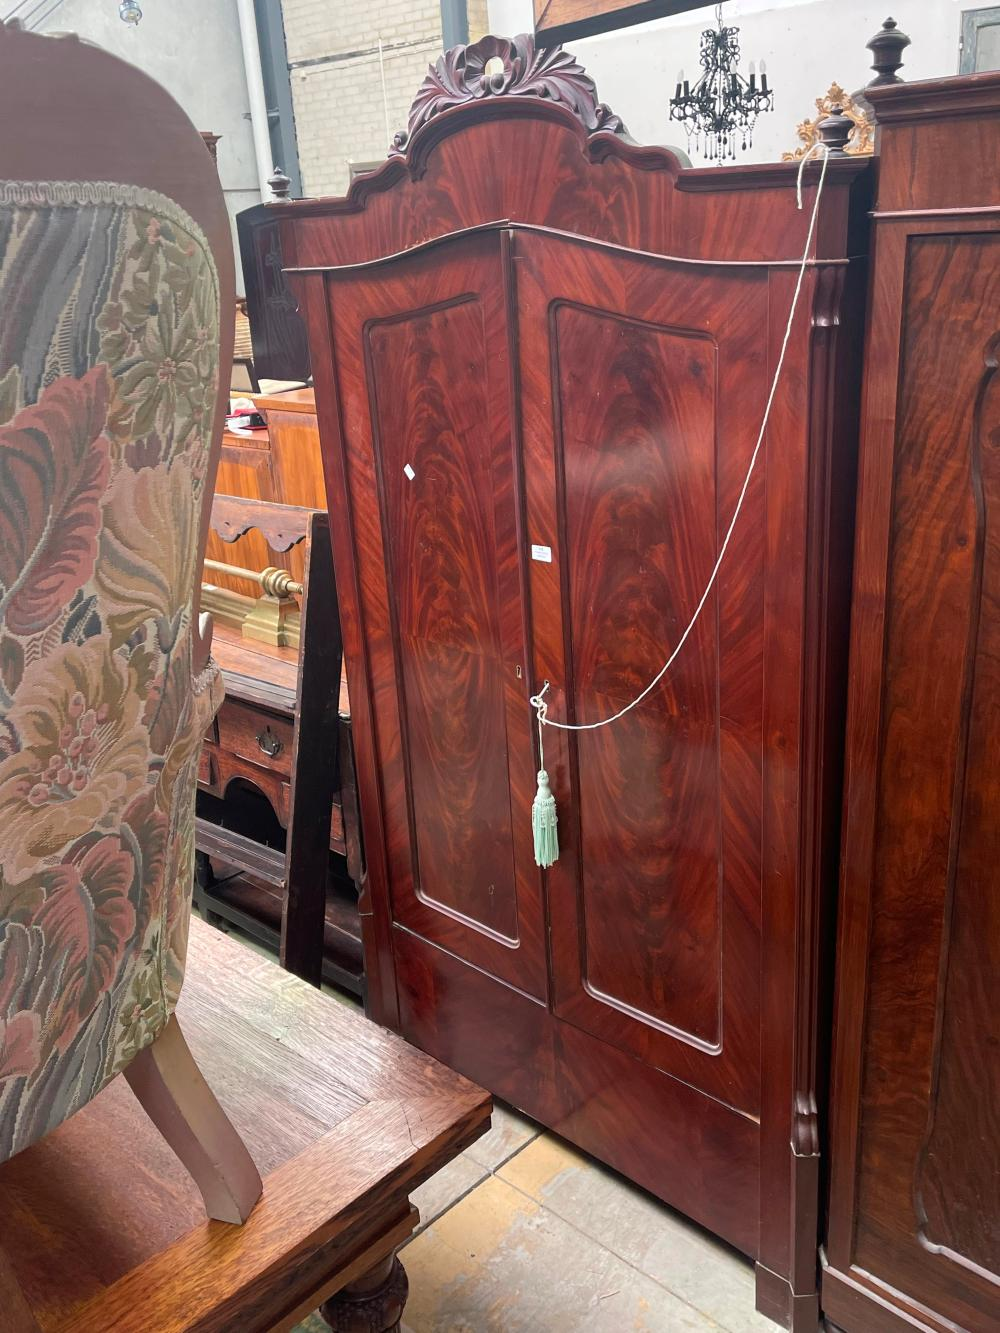 Antique Mahogany two door armoire carved central crest, flambe mahogany panelled doors, approx 195cm h x 103cm W x 48cm D